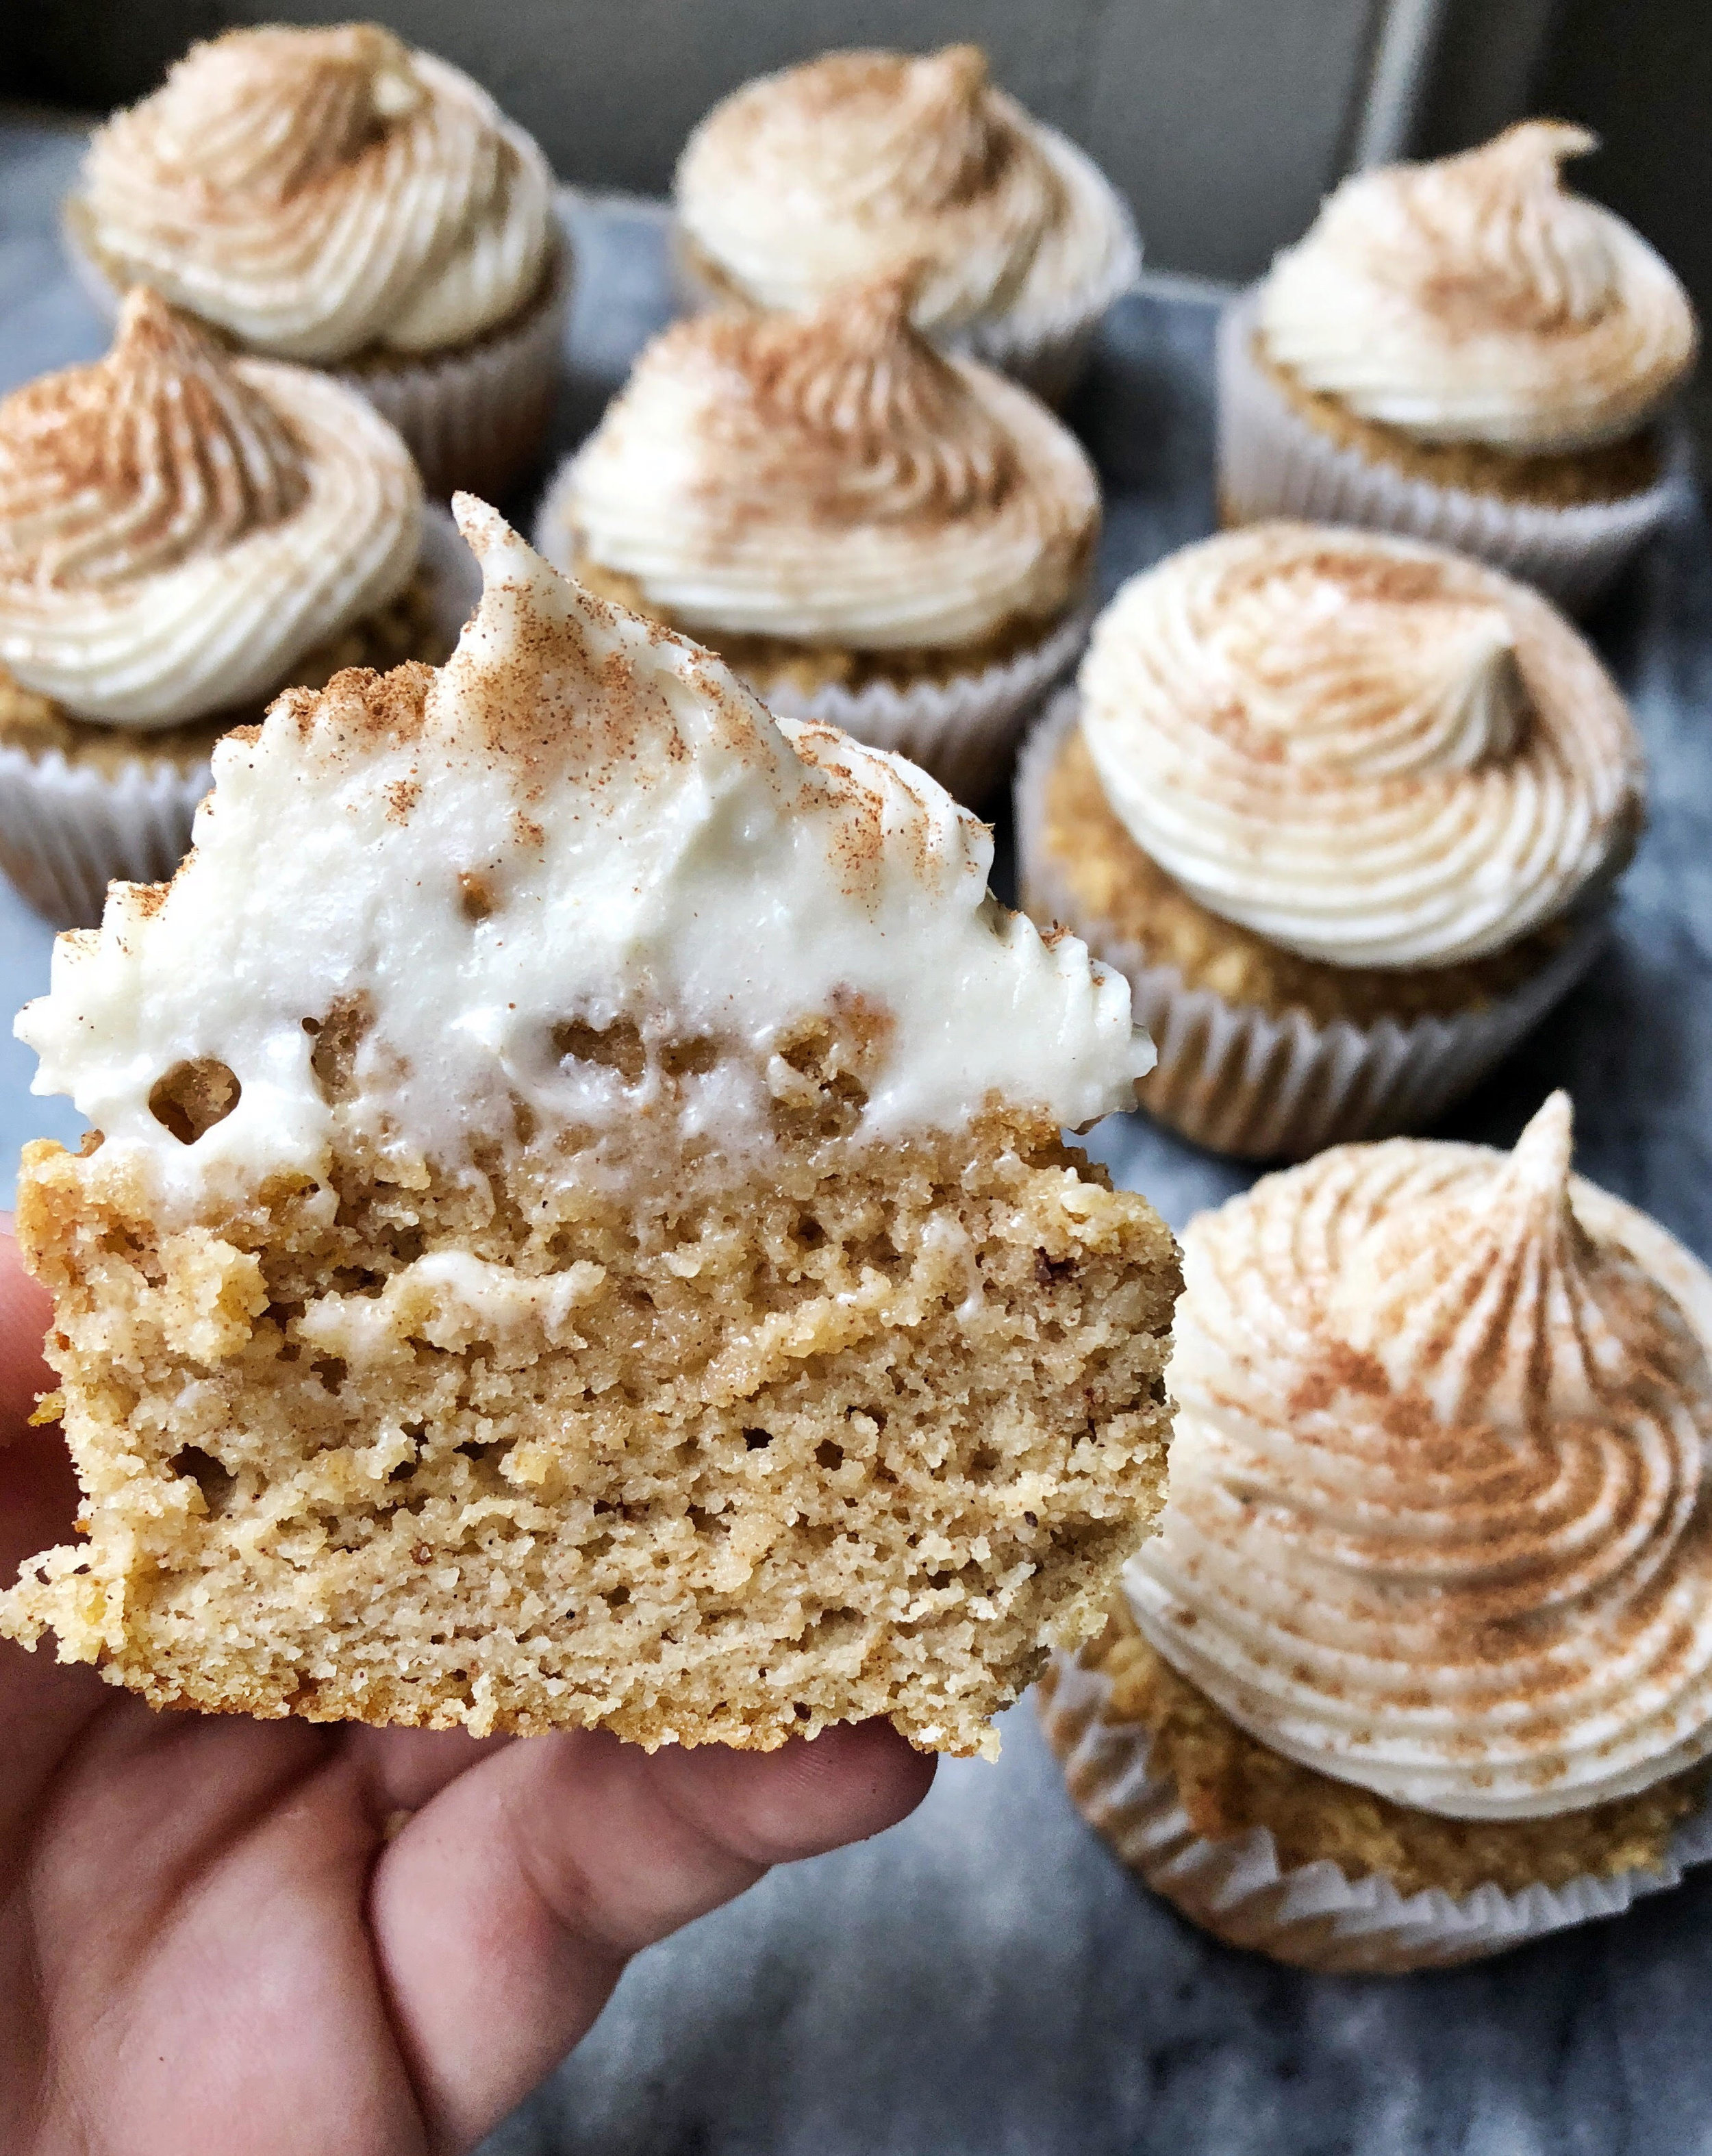 Grain Free Pumpkin Spice Cupcakes with Maple Cream Cheese Frosting are like a perfect little bite of fall. If you are looking for a Halloween, Thanksgiving or simply fall themed treat, you cannot go wrong with these delicious little cupcakes.